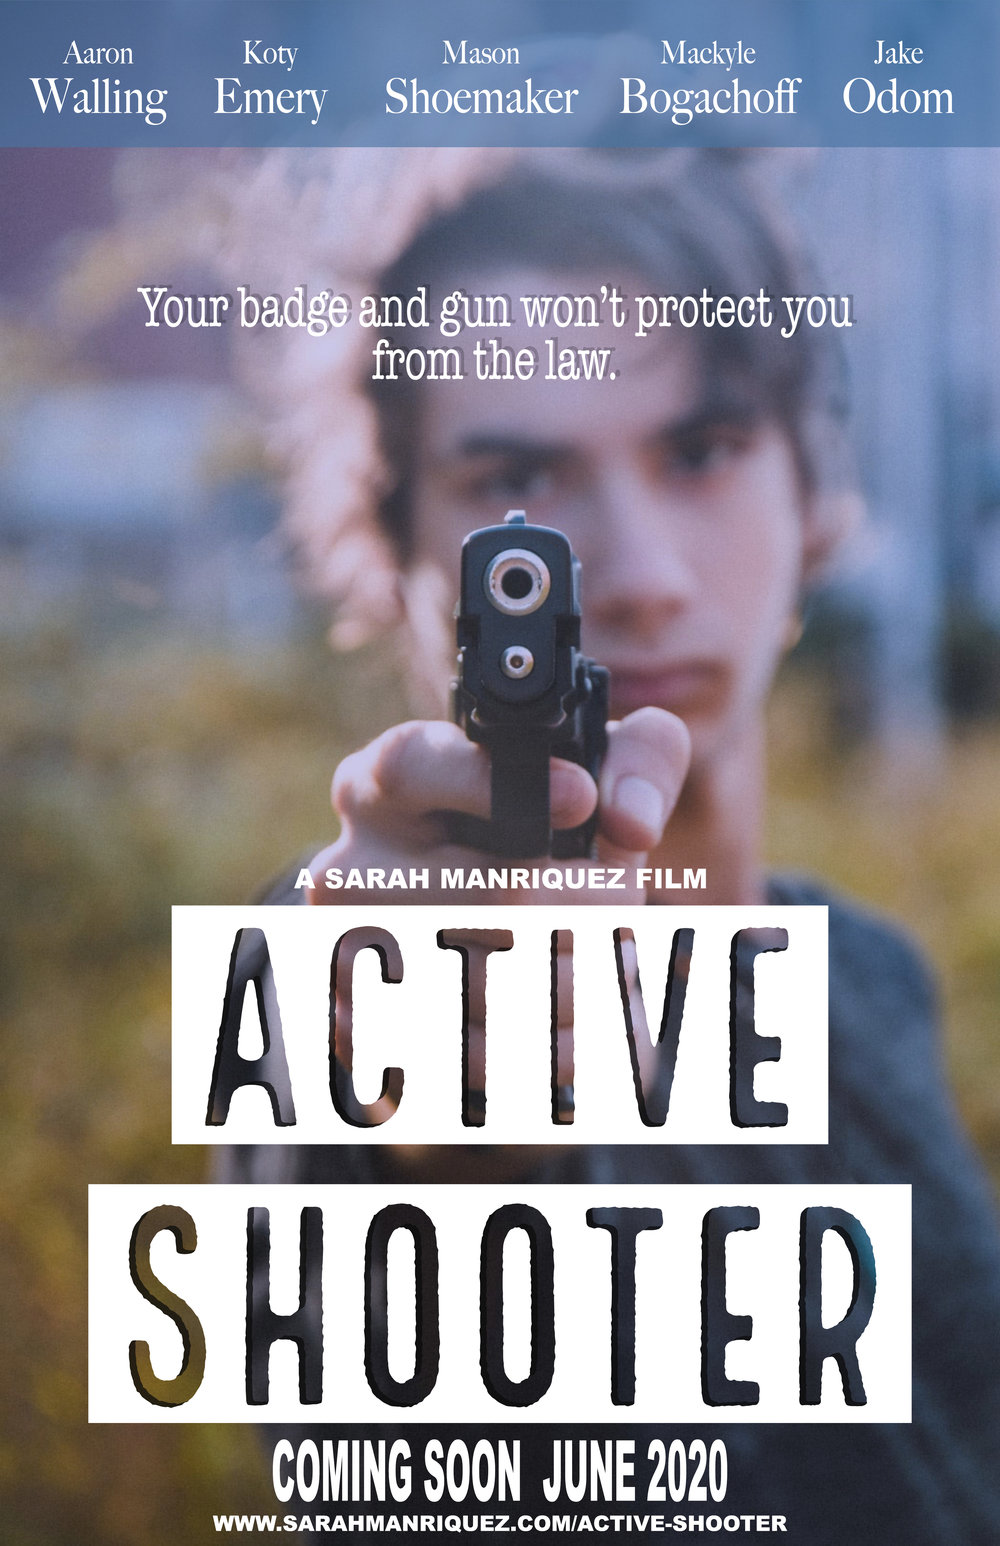 Active Shooter Movie Poster.jpg